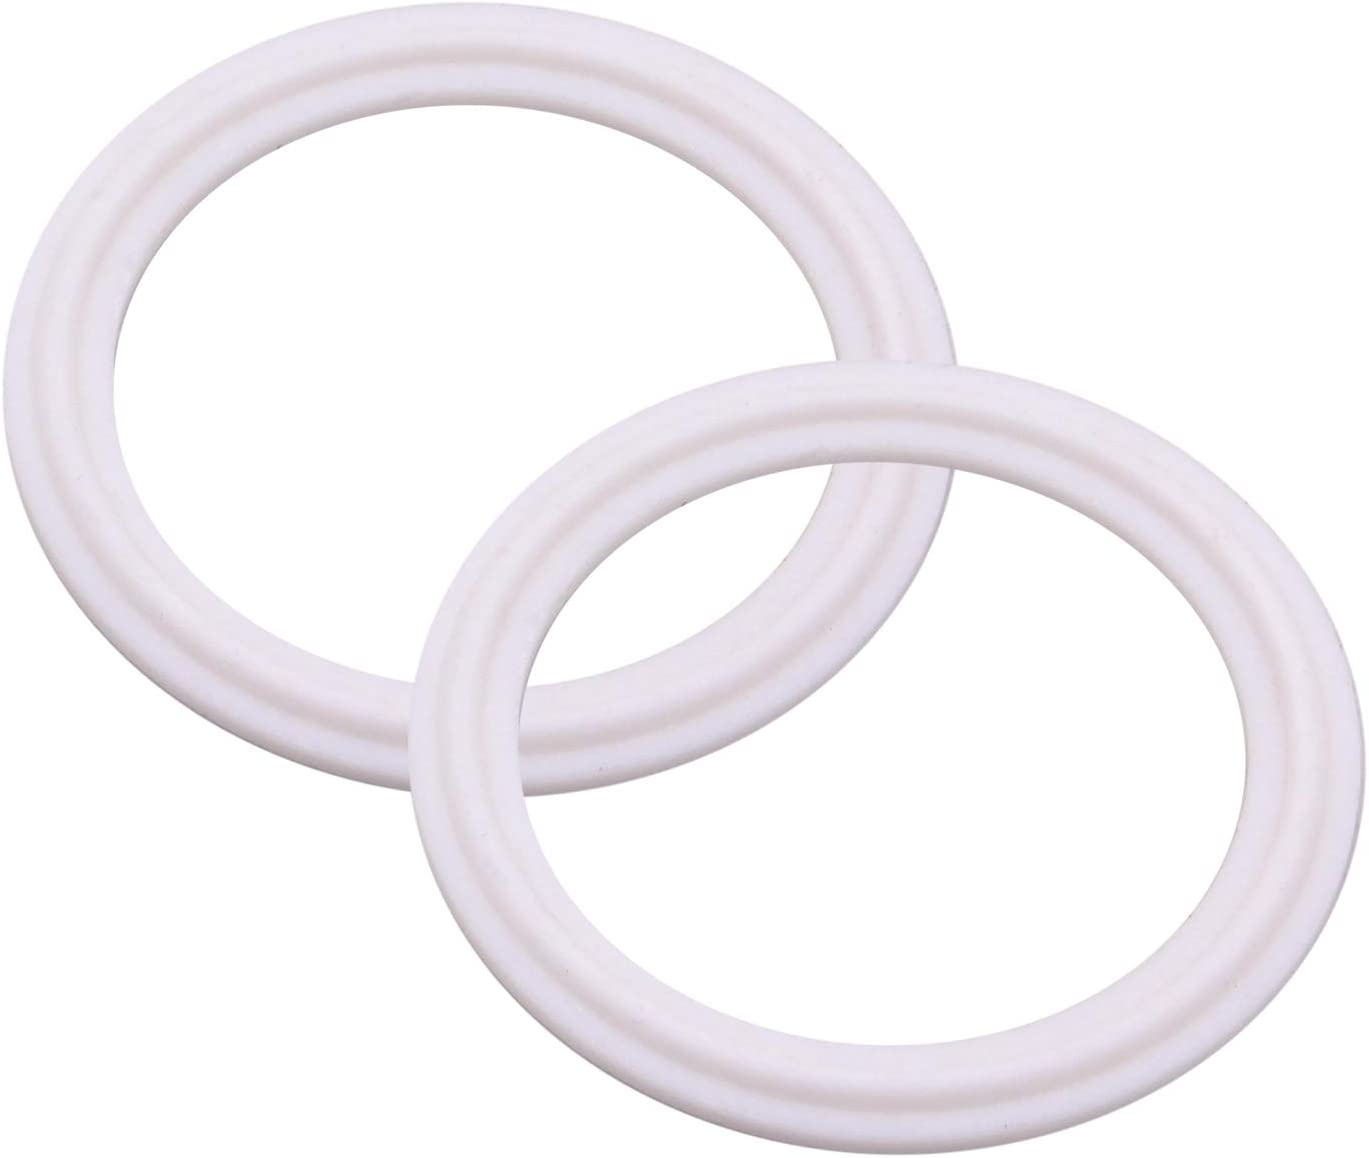 DERNORD PTFE (Teflon) Tri-Clamp Gasket O-Ring - 1.5 Inch Style Fits OD 50.5MM Sanitary Pipe Weld Ferrule (Pack of 2)